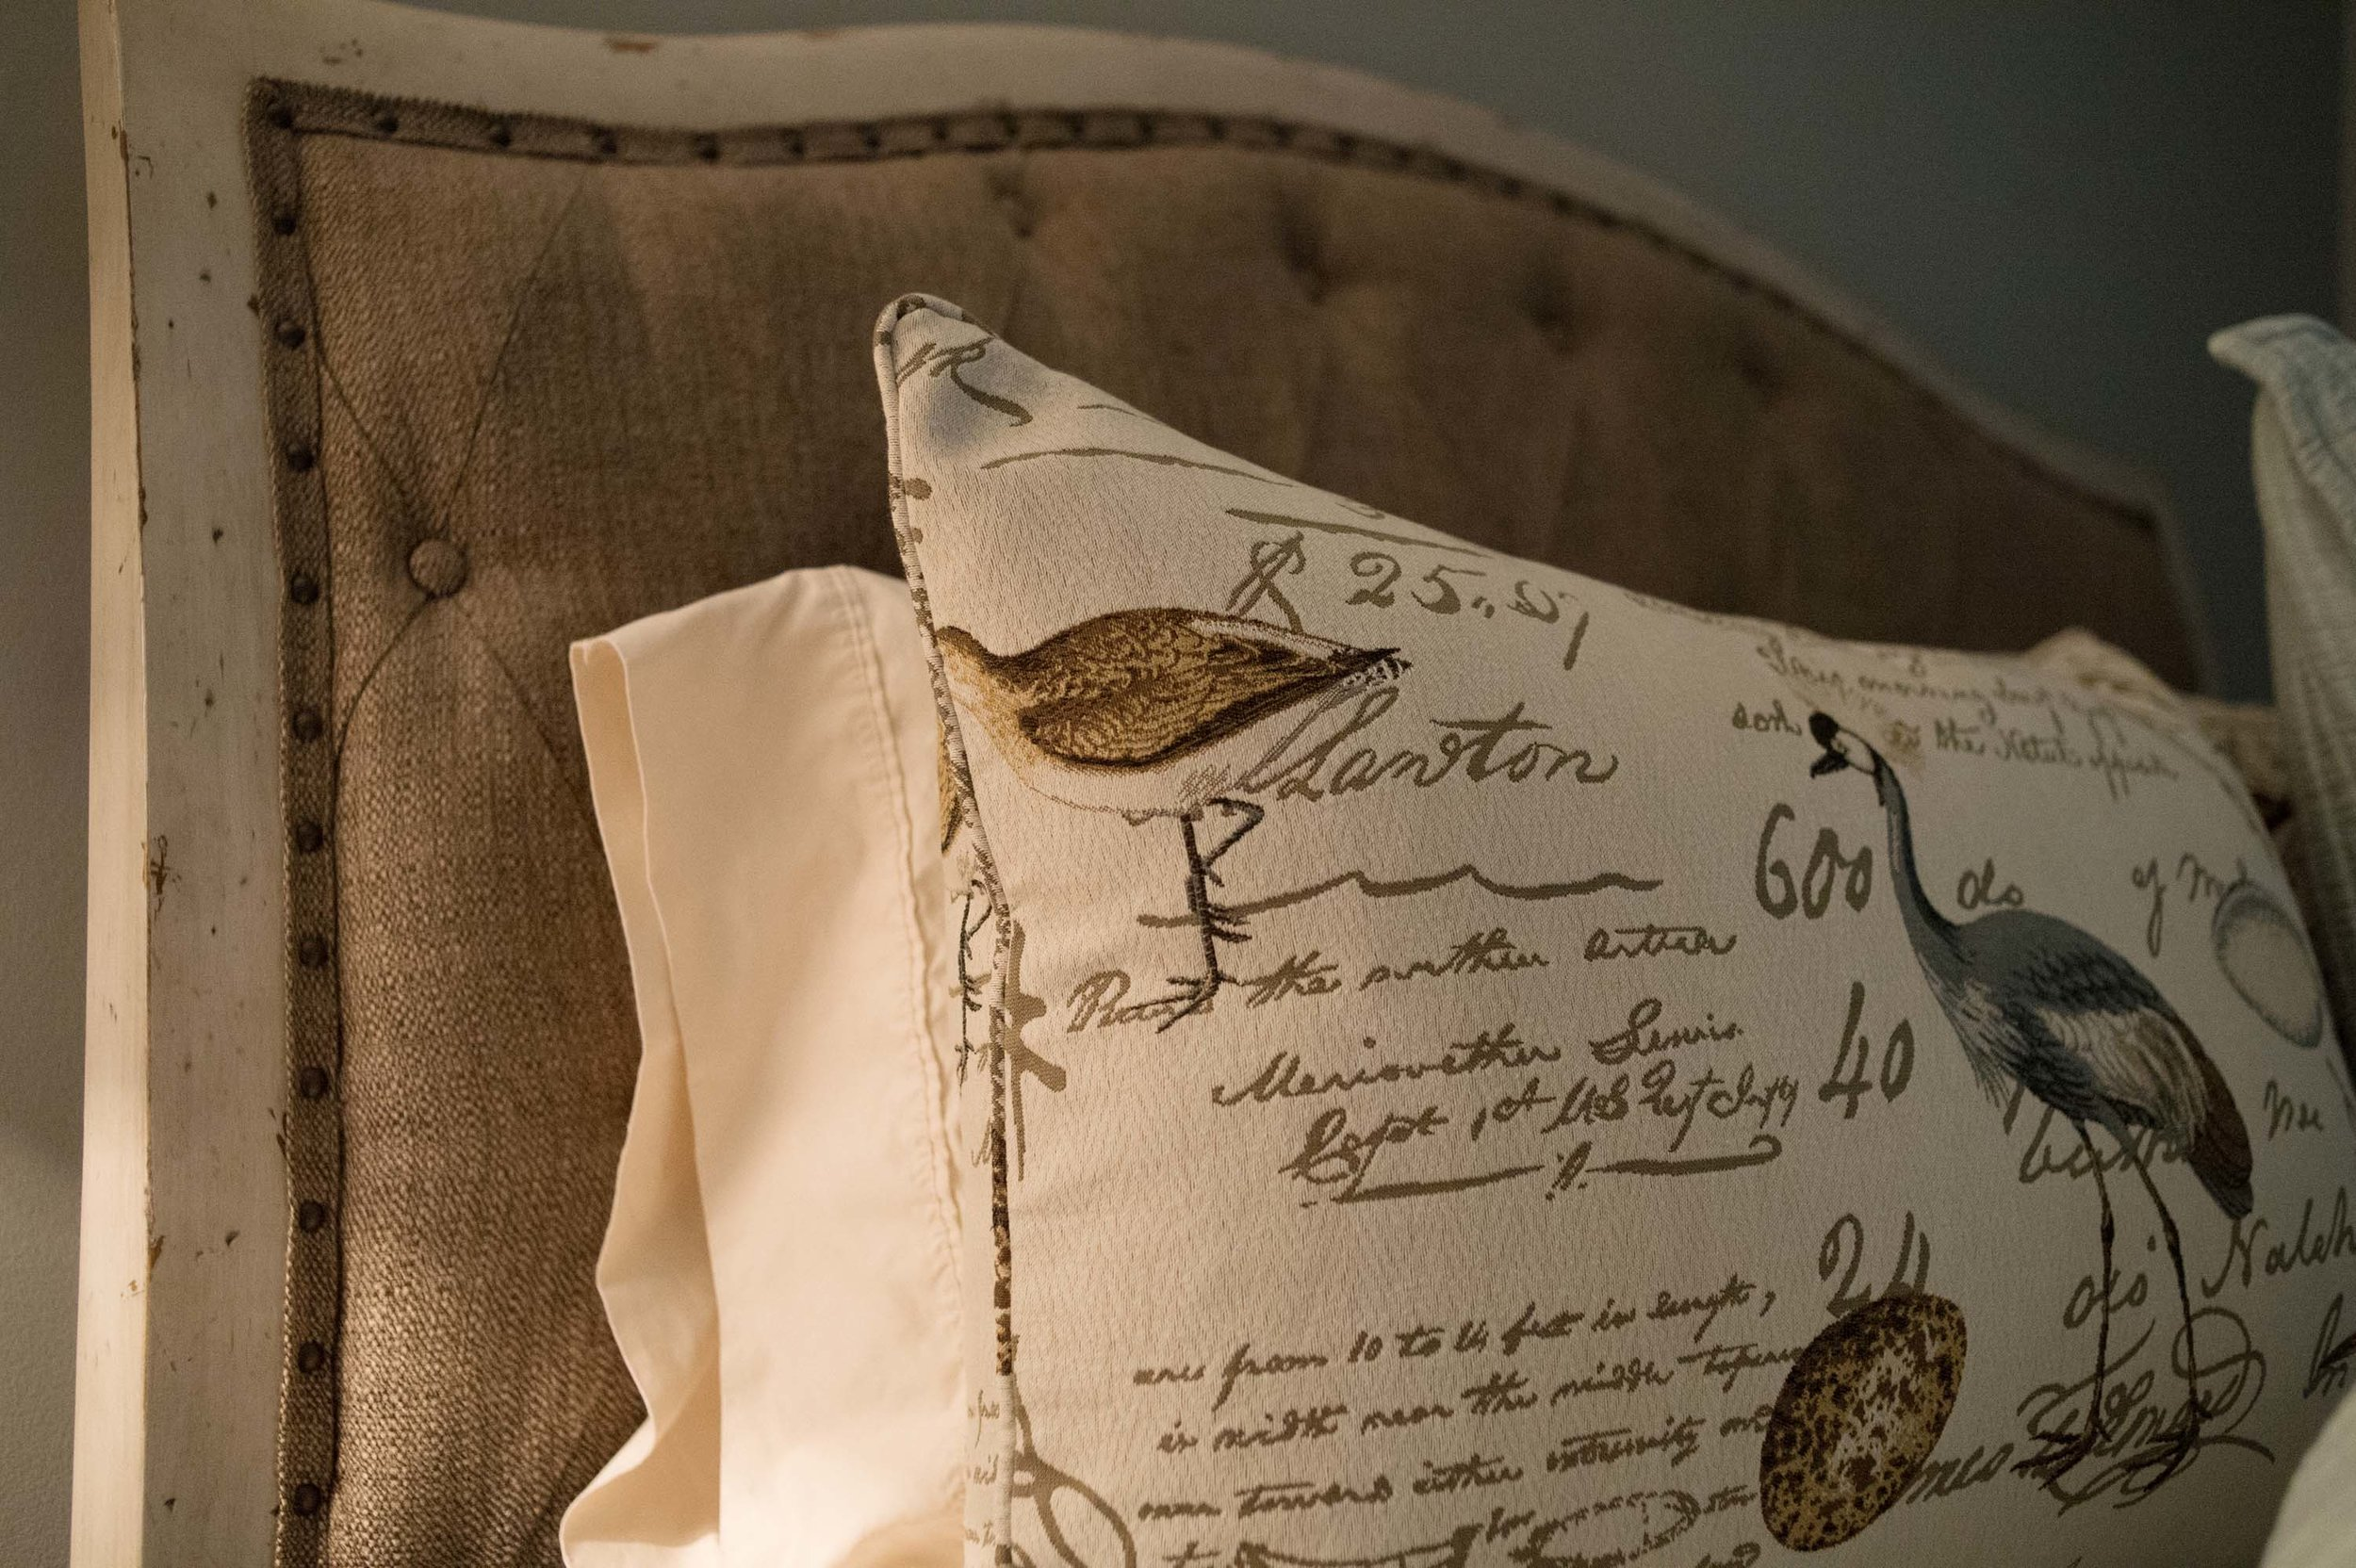 Vintage bed headboard and pillows on bed